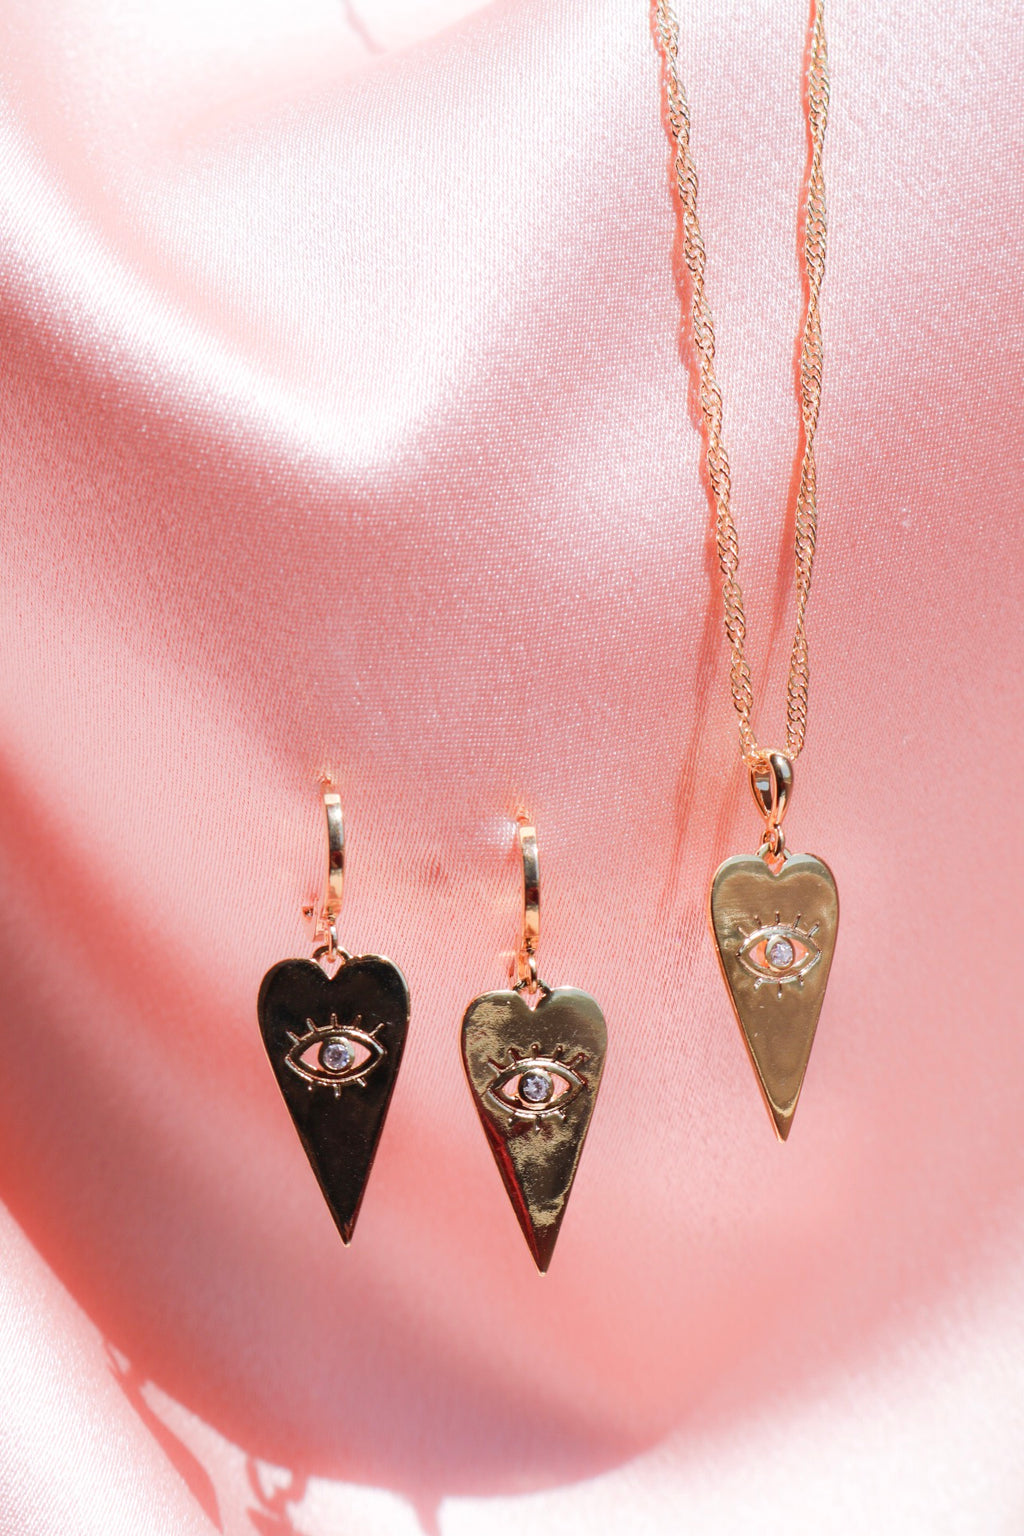 Good Fortune Eye Design Necklace and Earrings